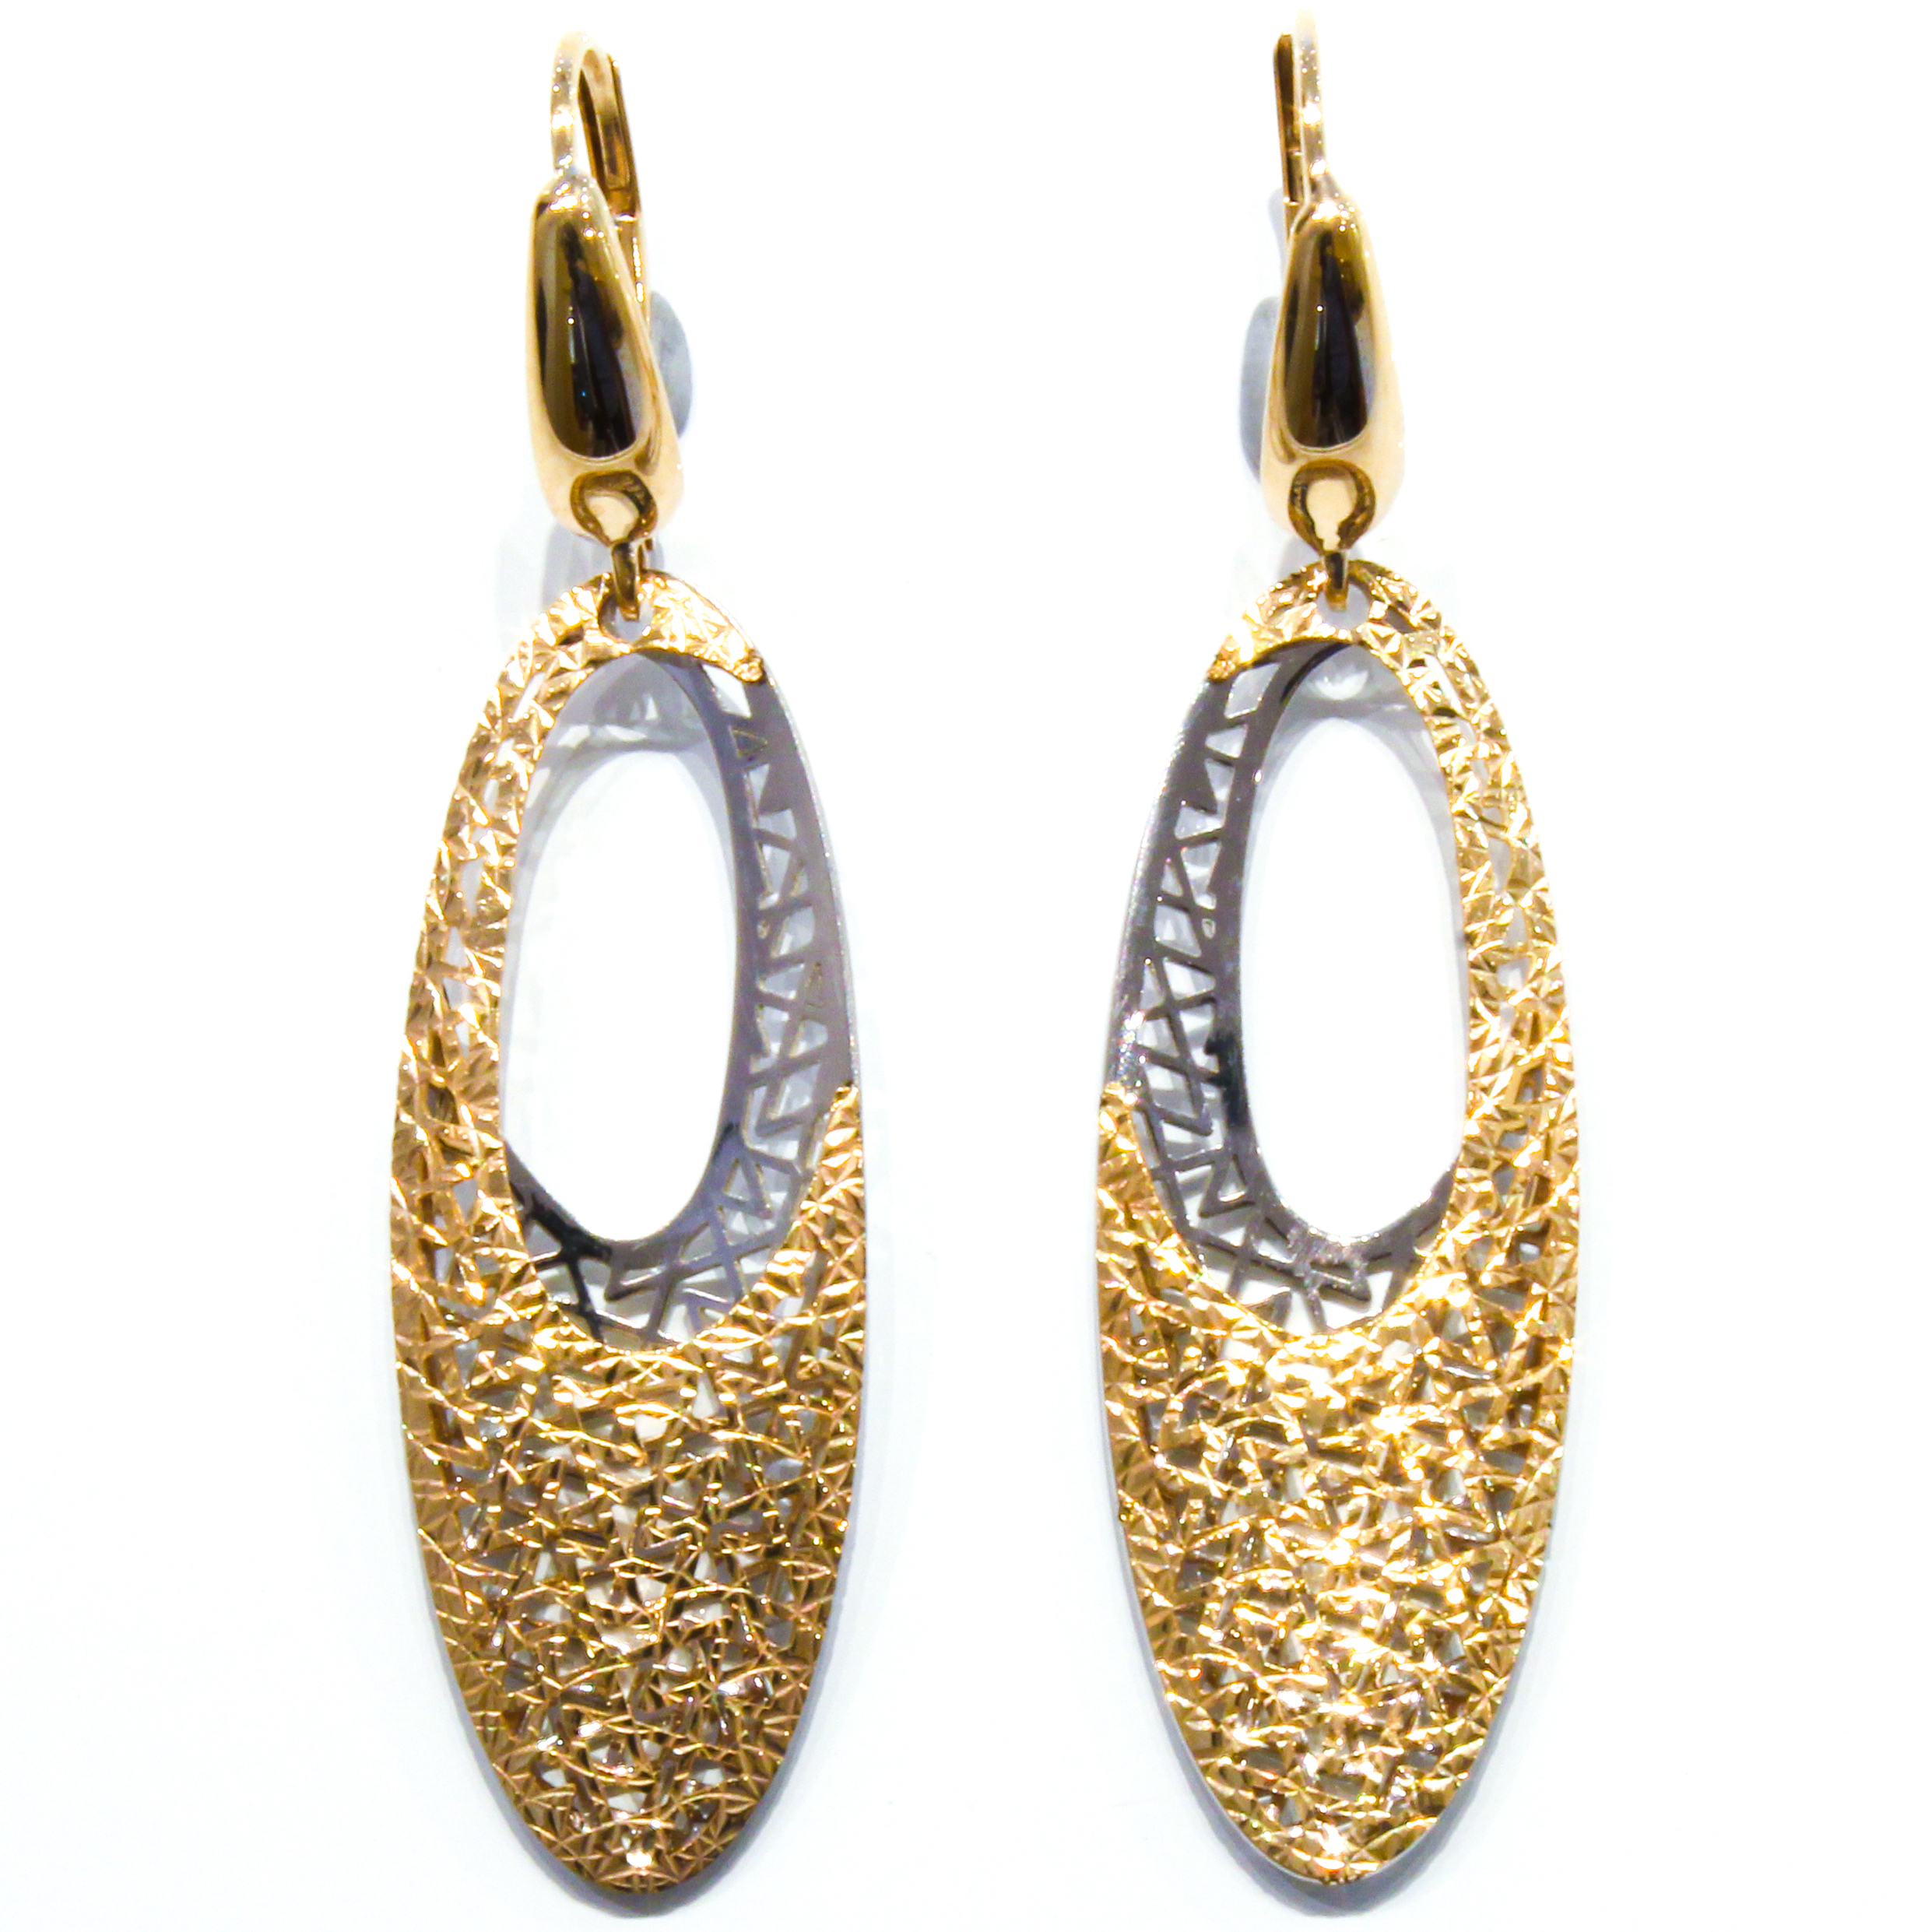 italiangoldringside specialcollections italian gold italiangoldjewelry htm earrings jewelry